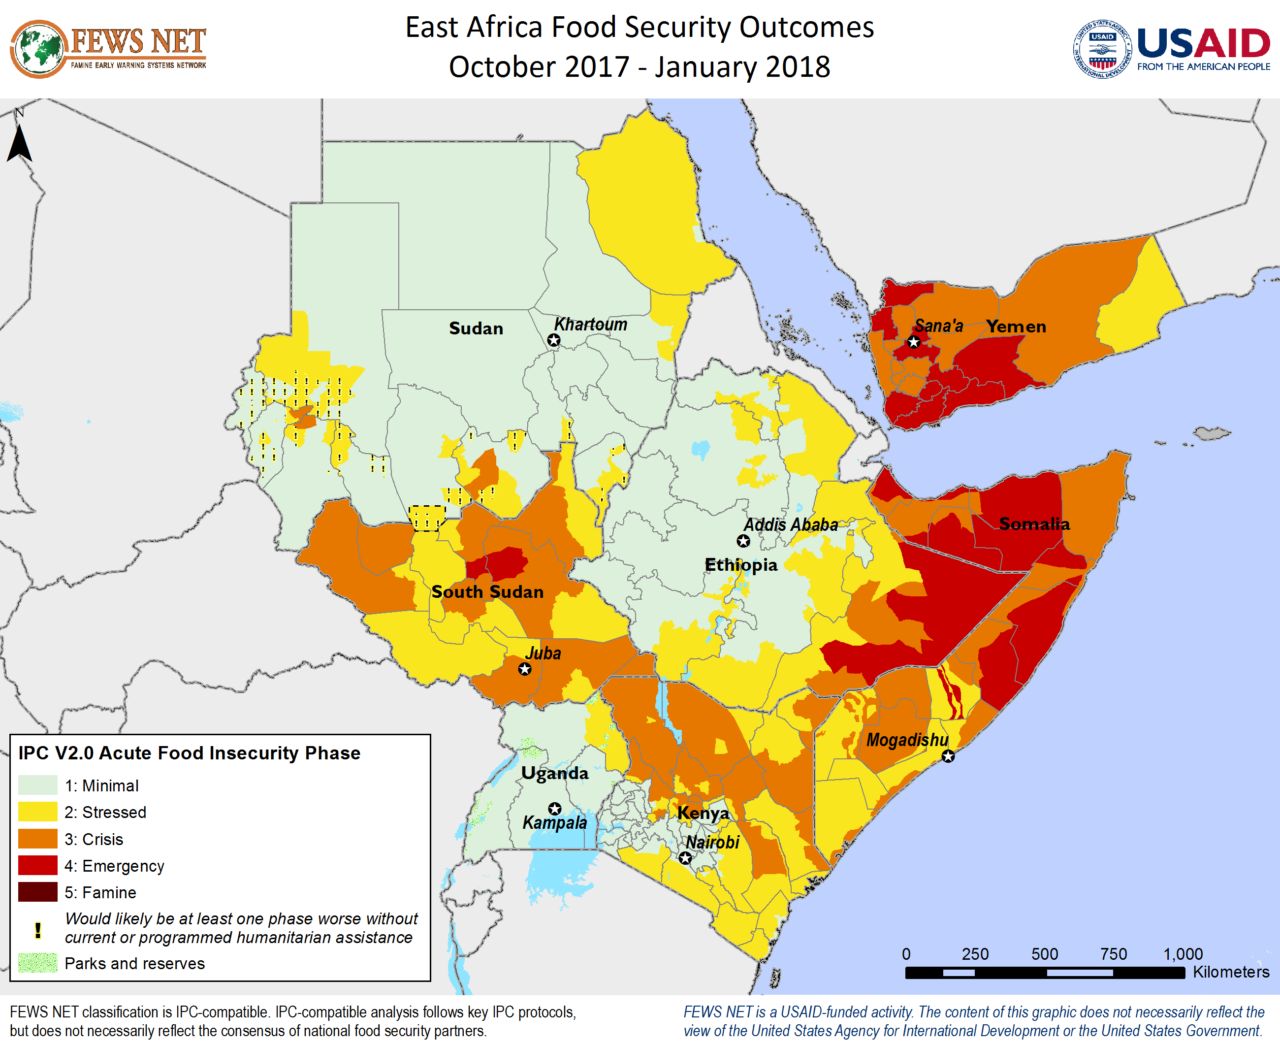 FEWS Net map of food security levels in East Africa through January, 2018.